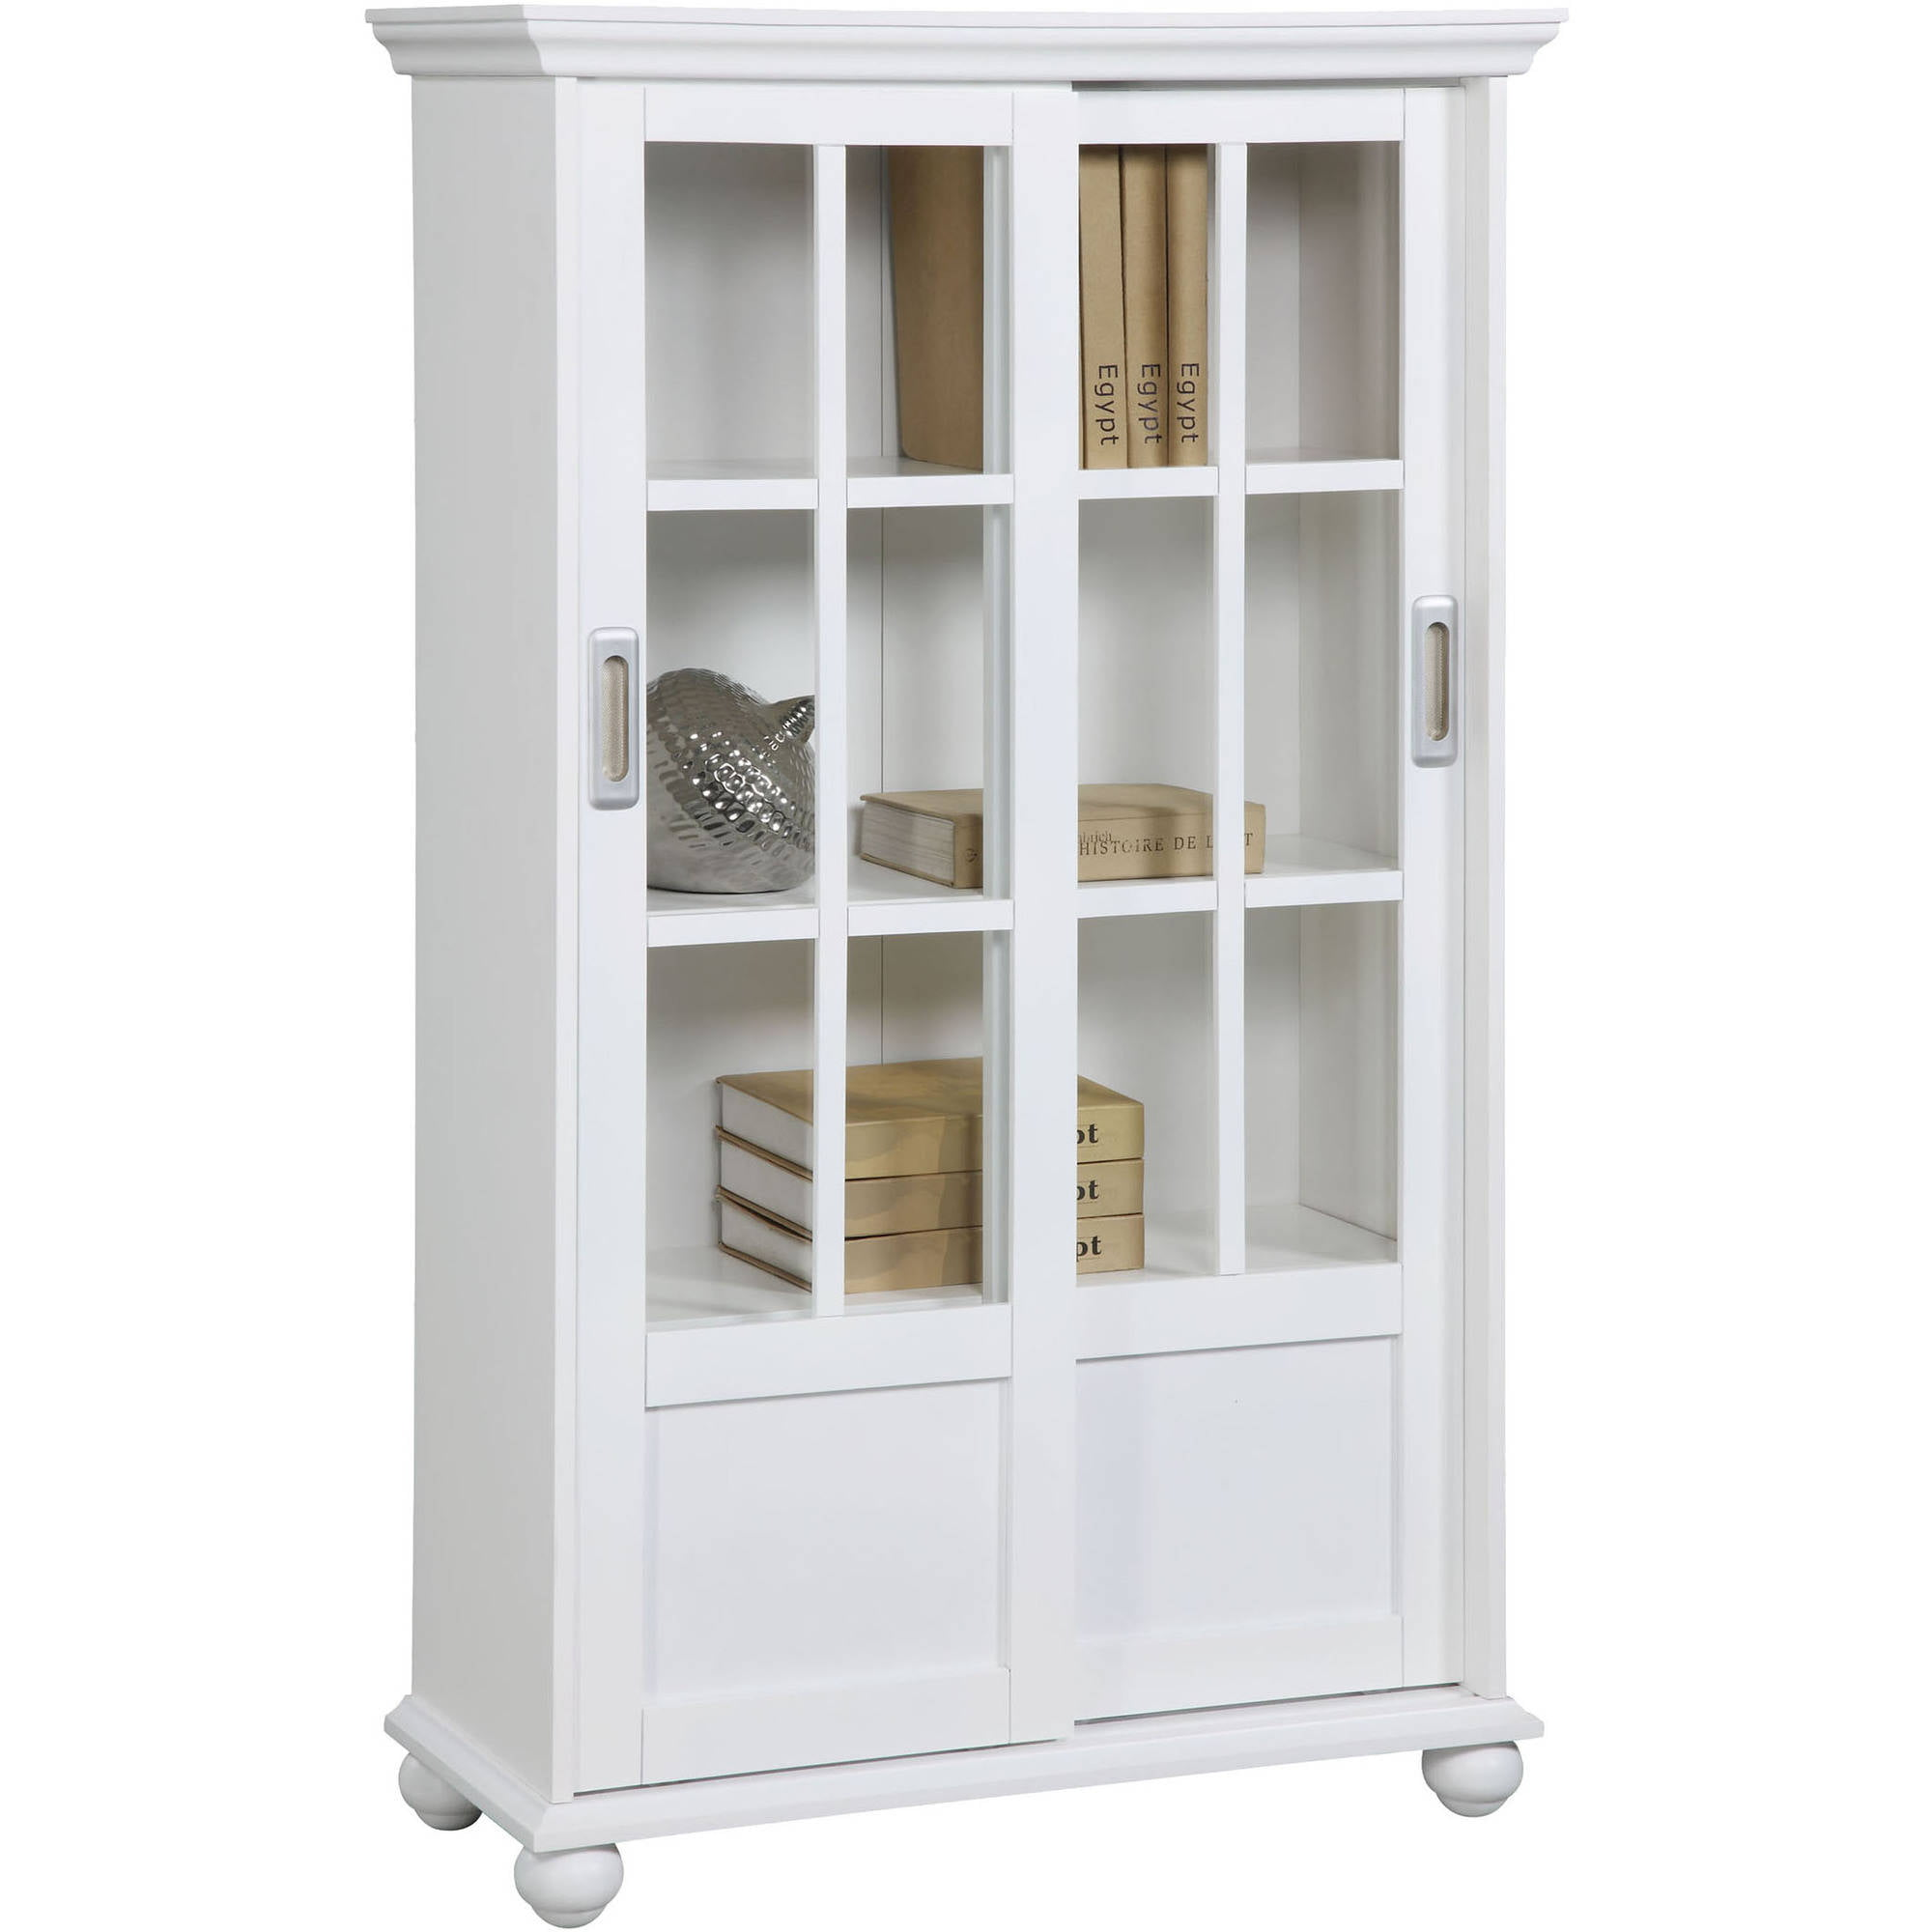 legs pivot glancing furniture with four hardwareet tx for idea bookcase offers bookcases at circle wooden indoor a look glass door kit plus sliding doors katy noble on as wells barn short rectangle